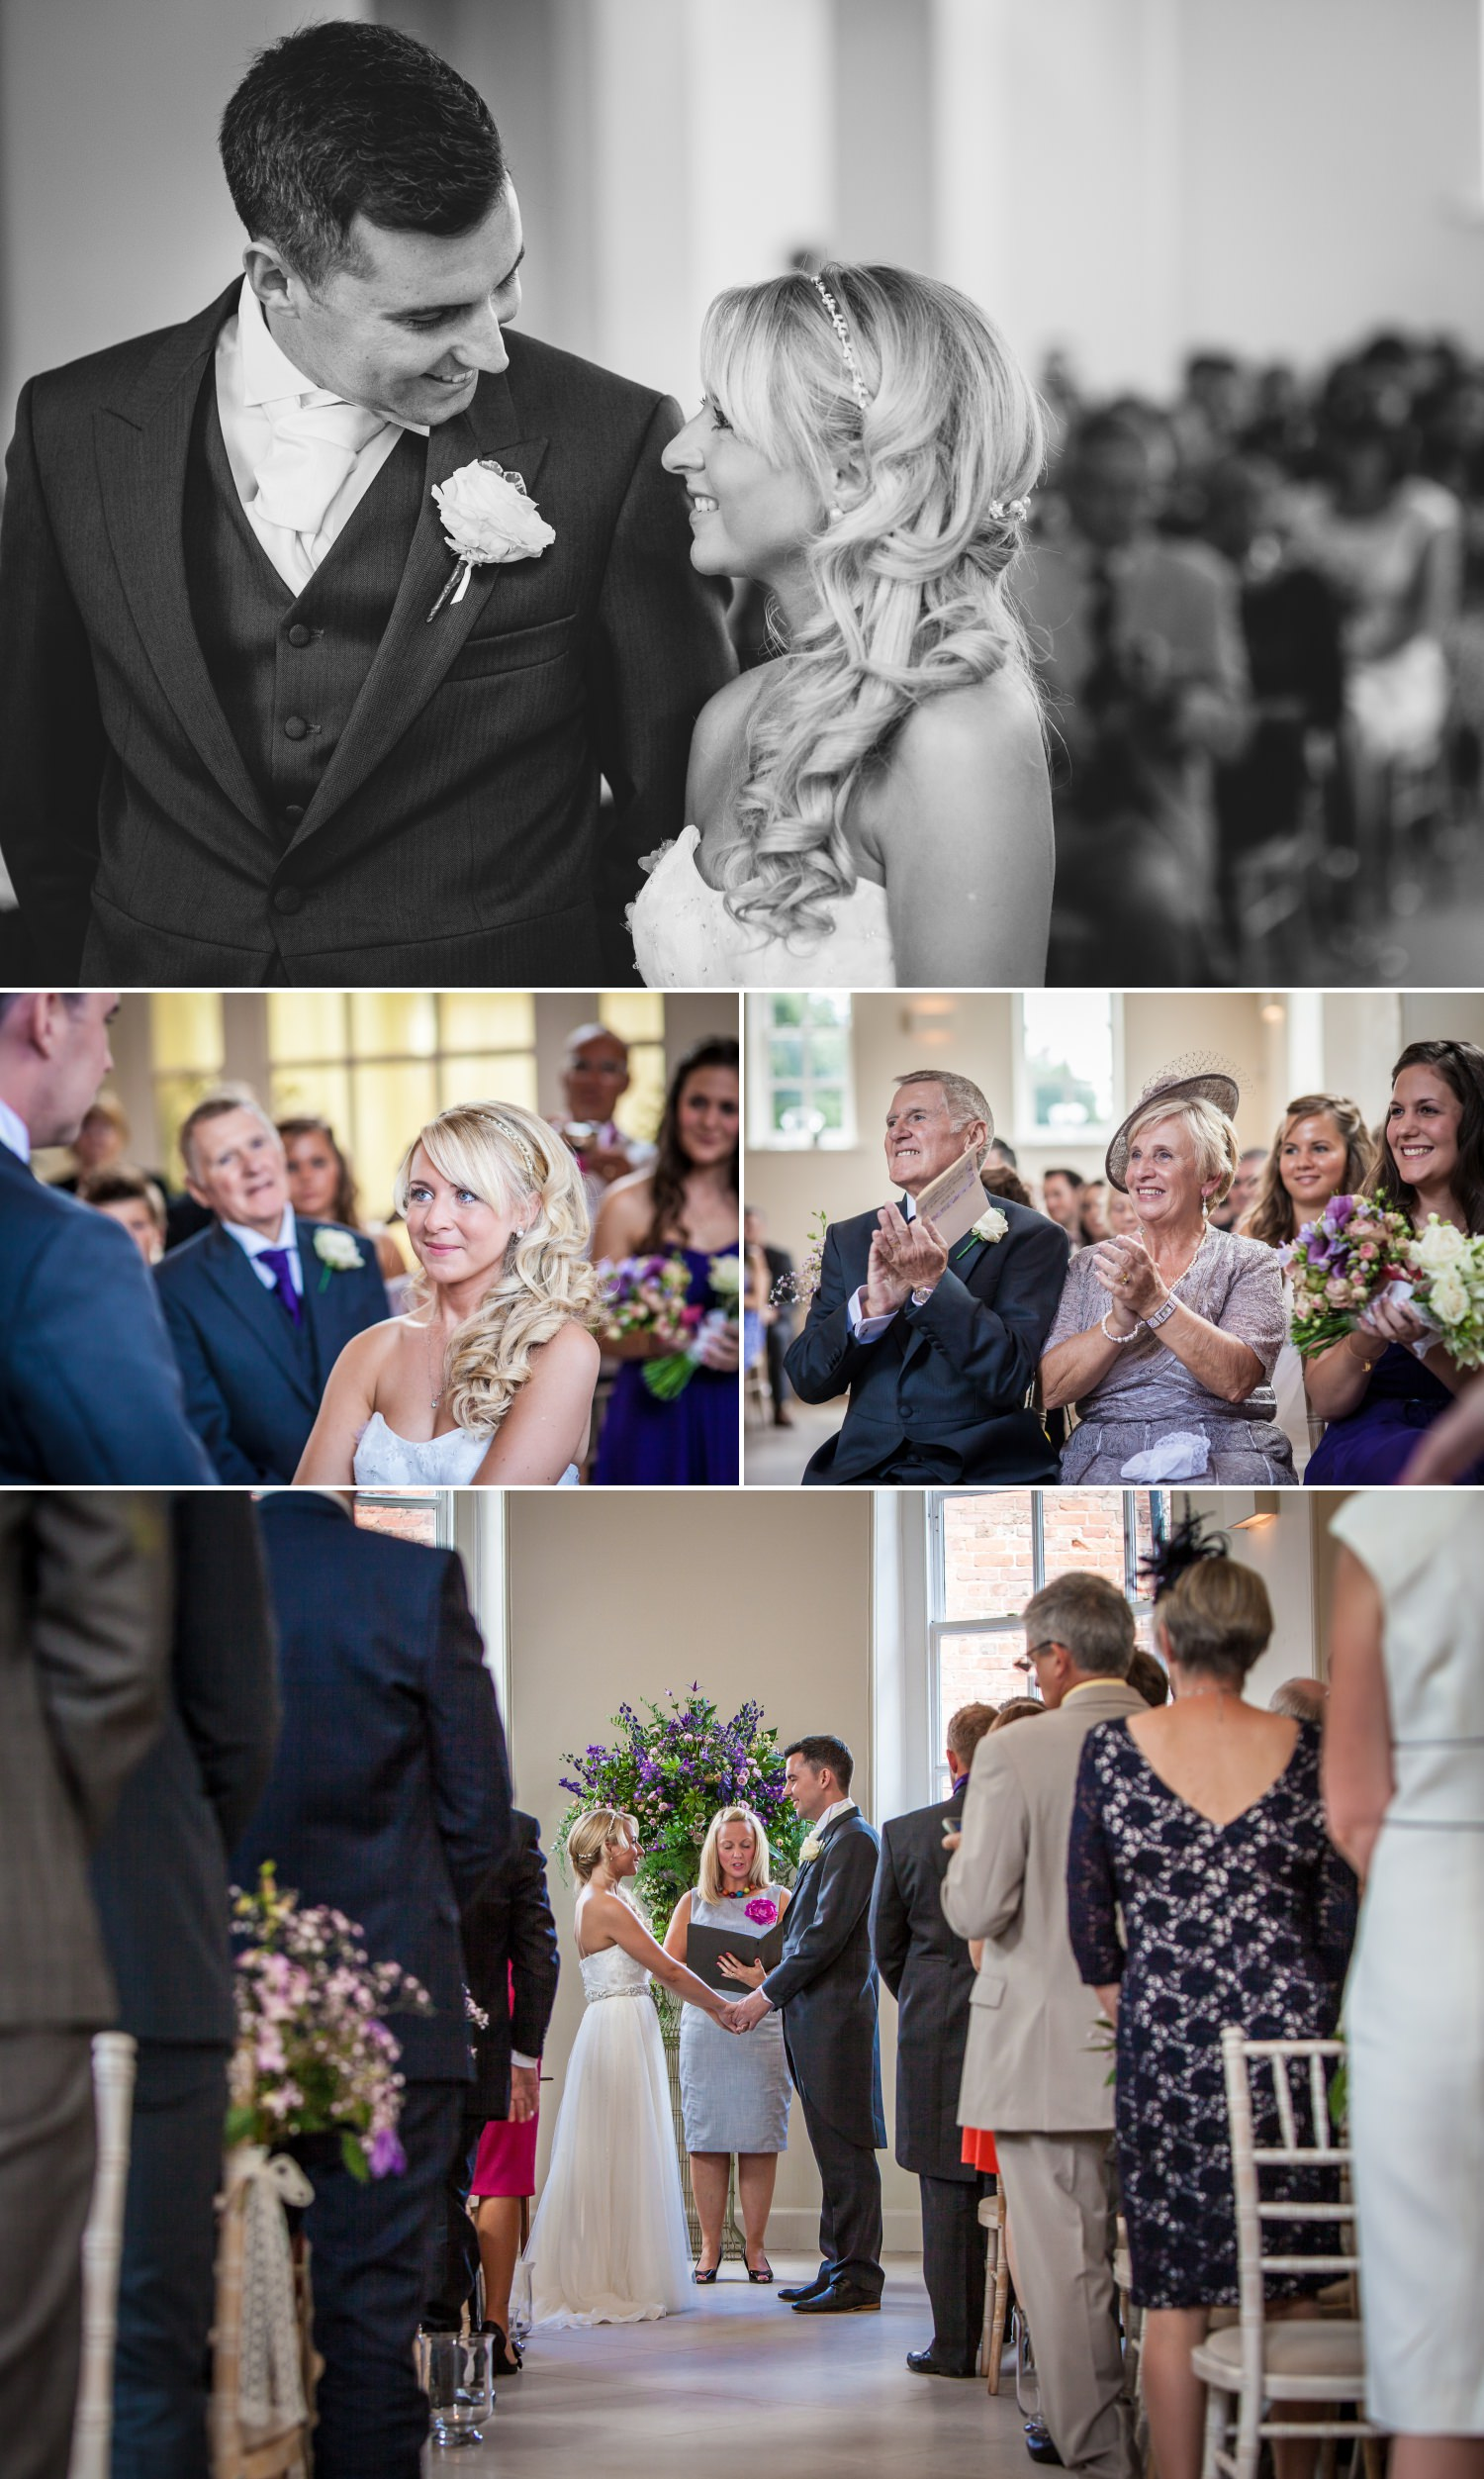 Wedding Photography of couple getting married at Iscoyd Park